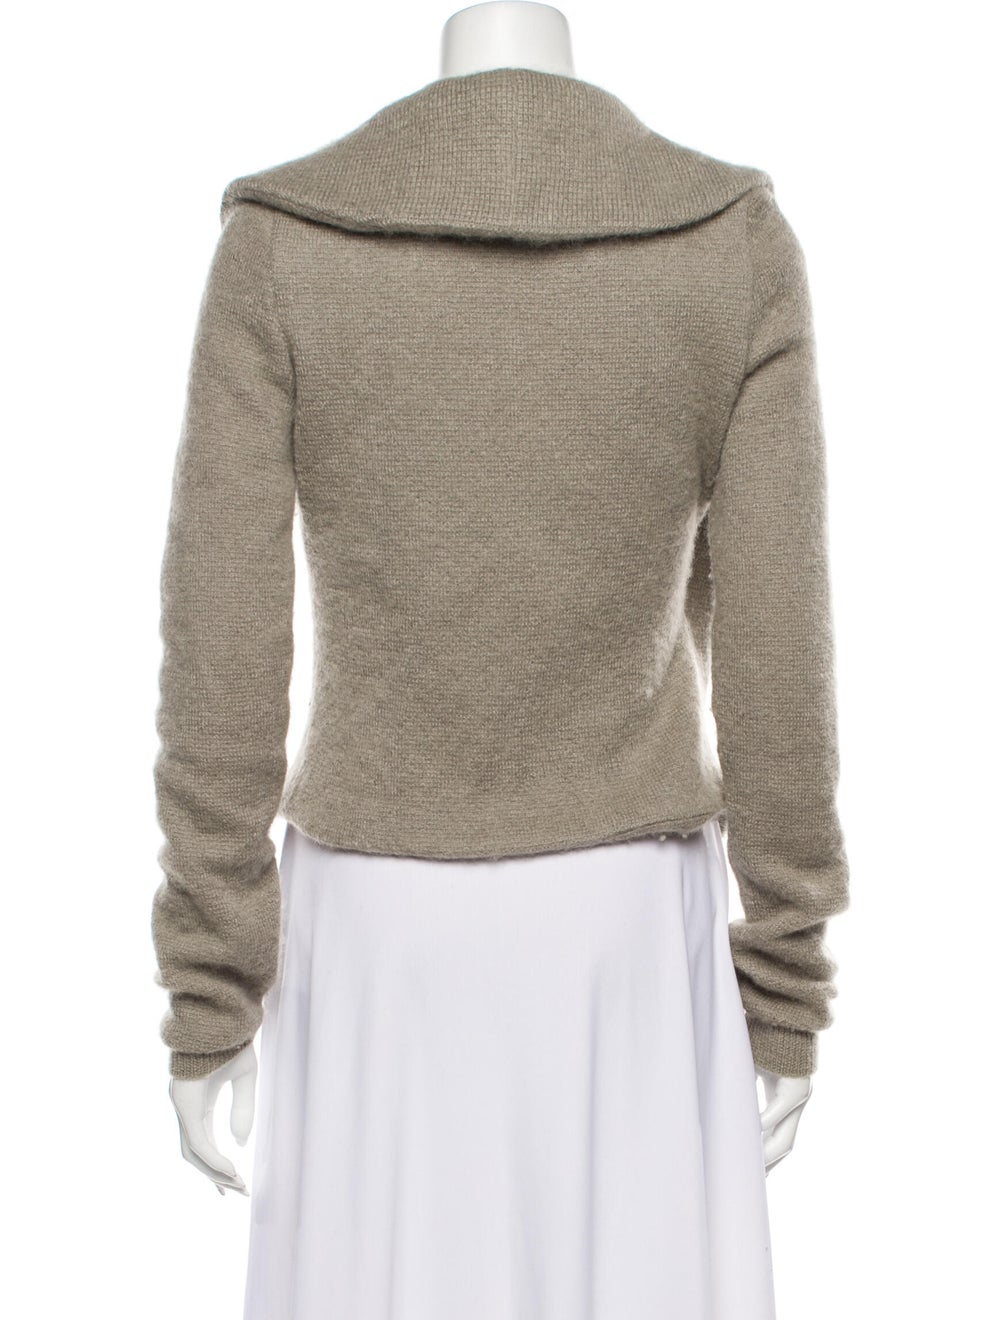 Givenchy Mohair Sweater - image 3